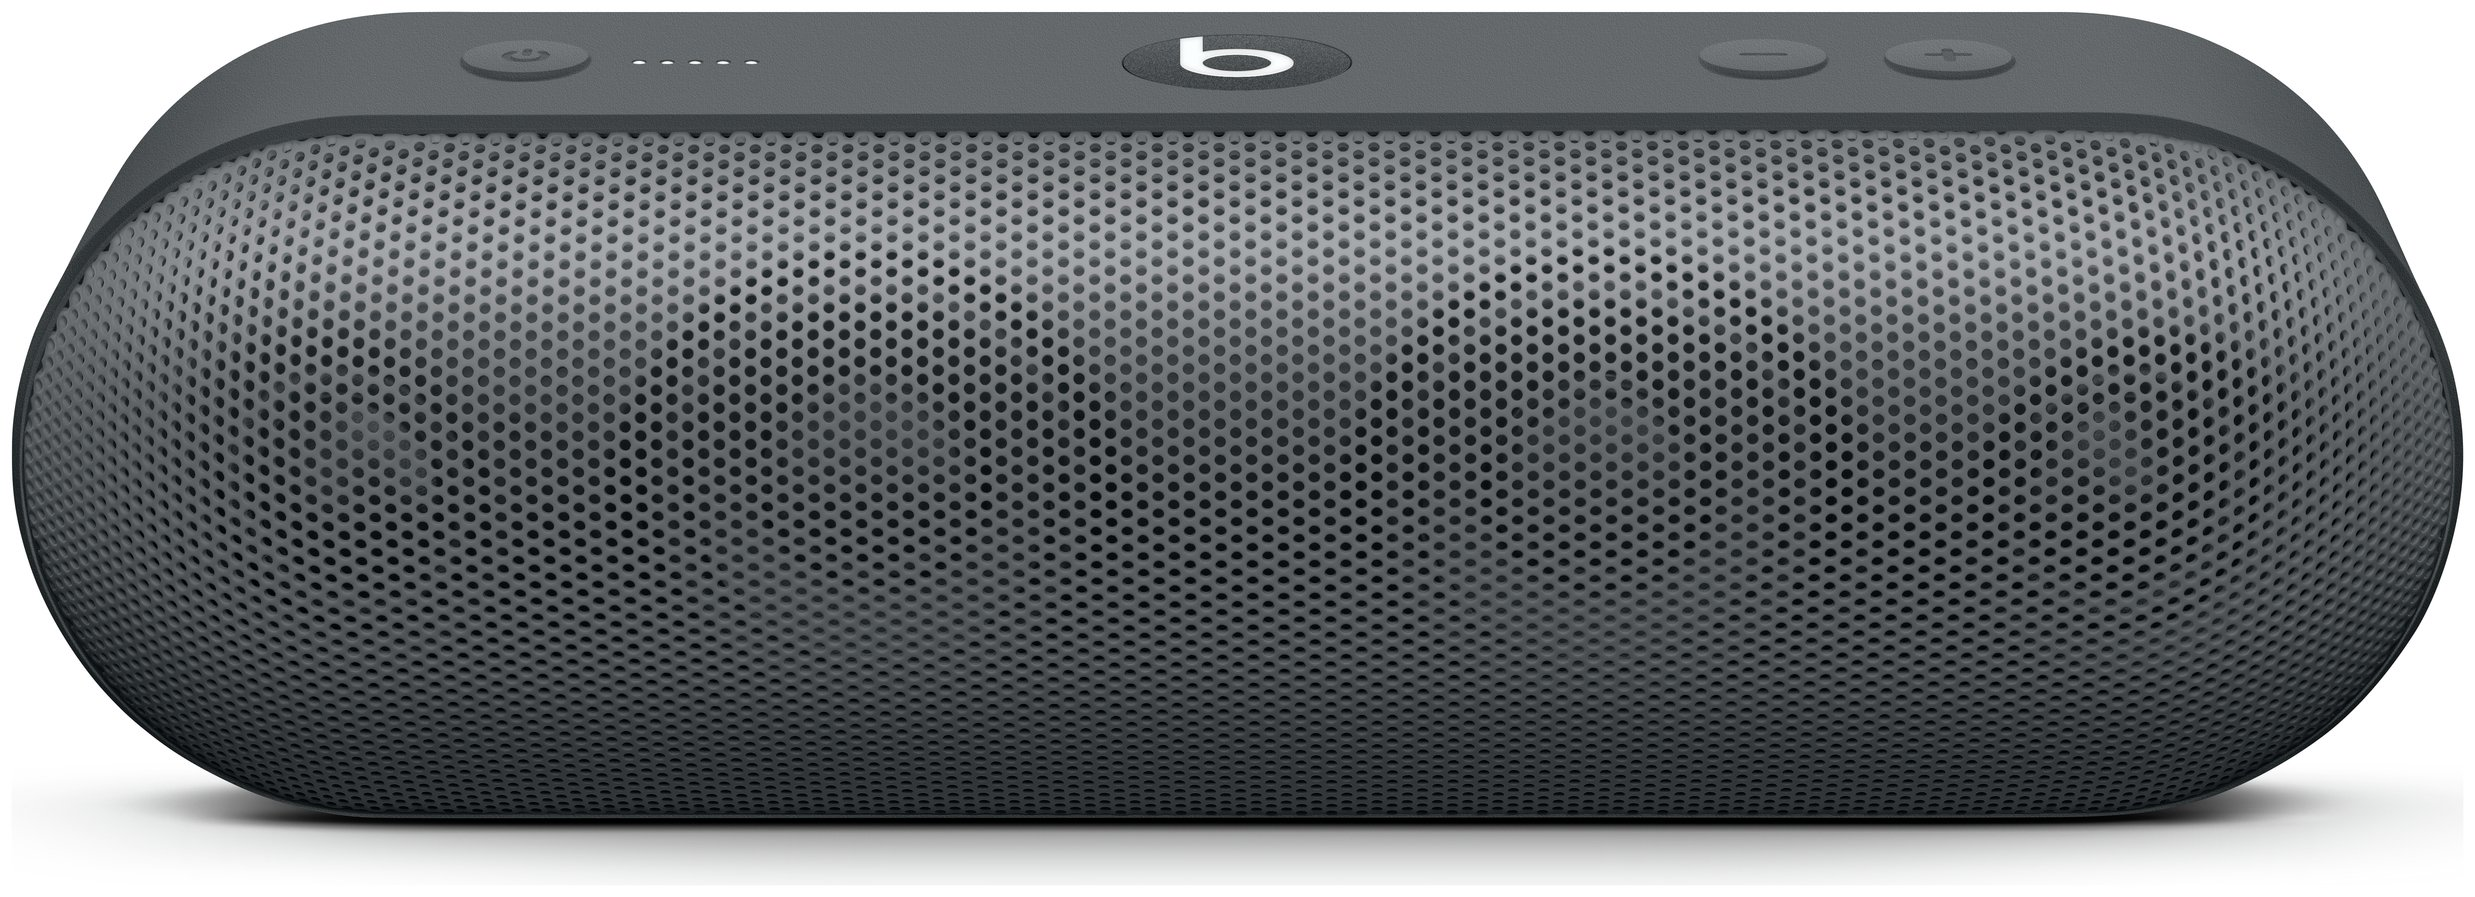 Beats Pill + Portable Wireless Speaker - Grey